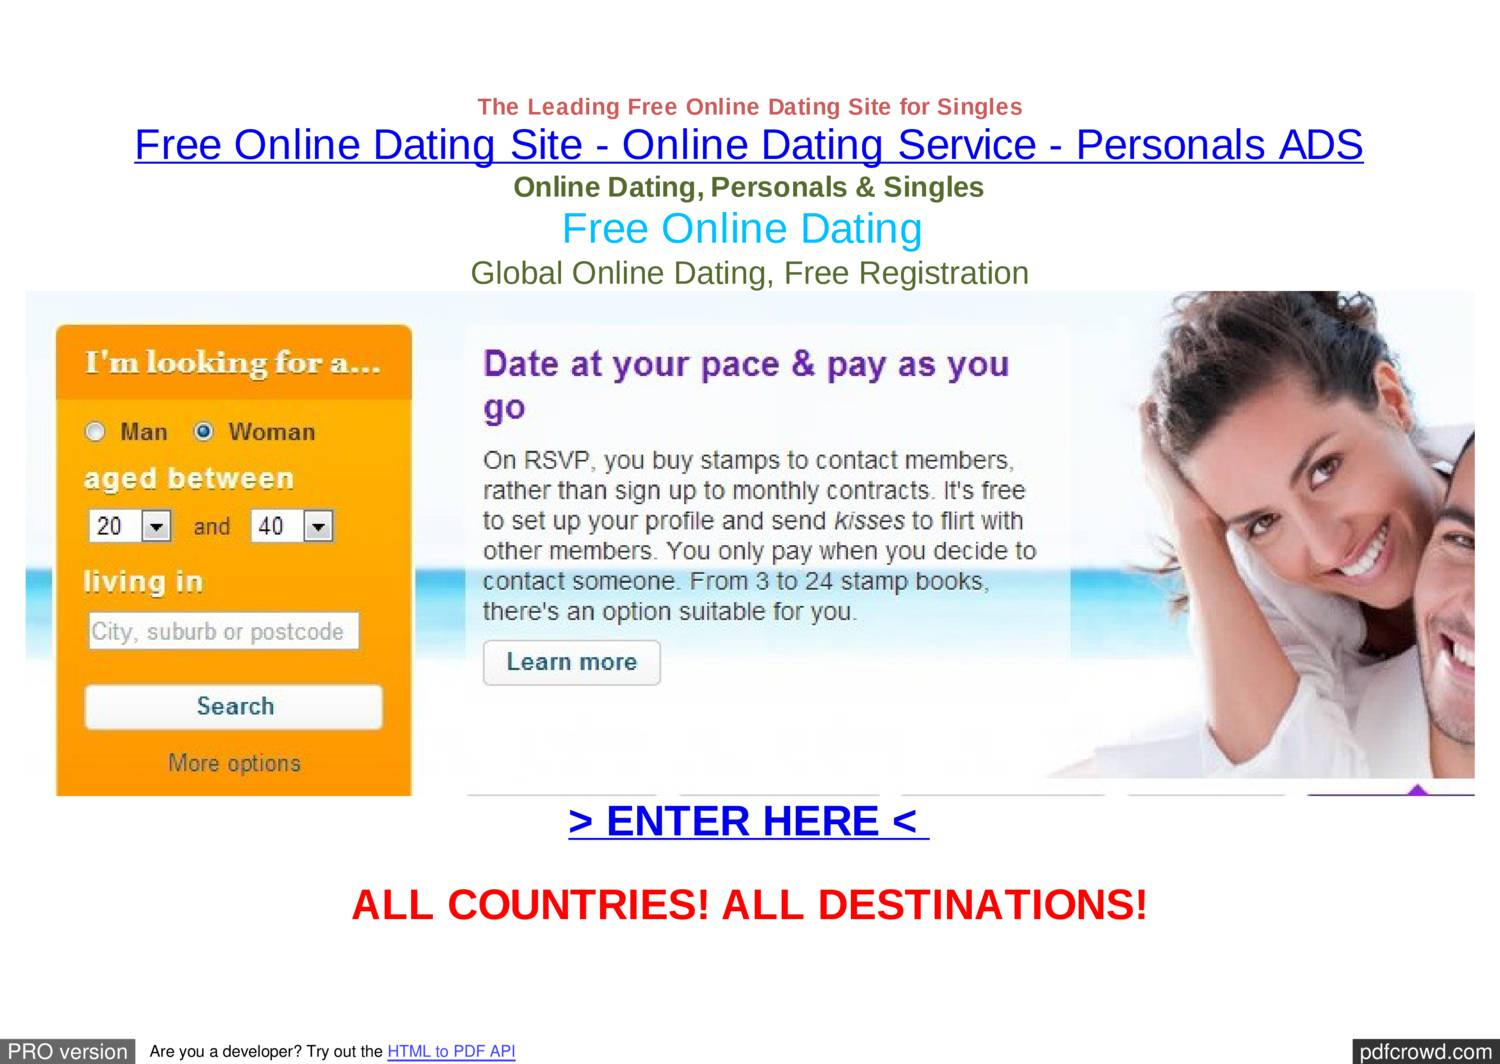 free online personals in conger See experts' picks for the 10 best dating sites of 2018 compare online dating reviews, stats, free trials, and more (as seen on cnn and foxnews.